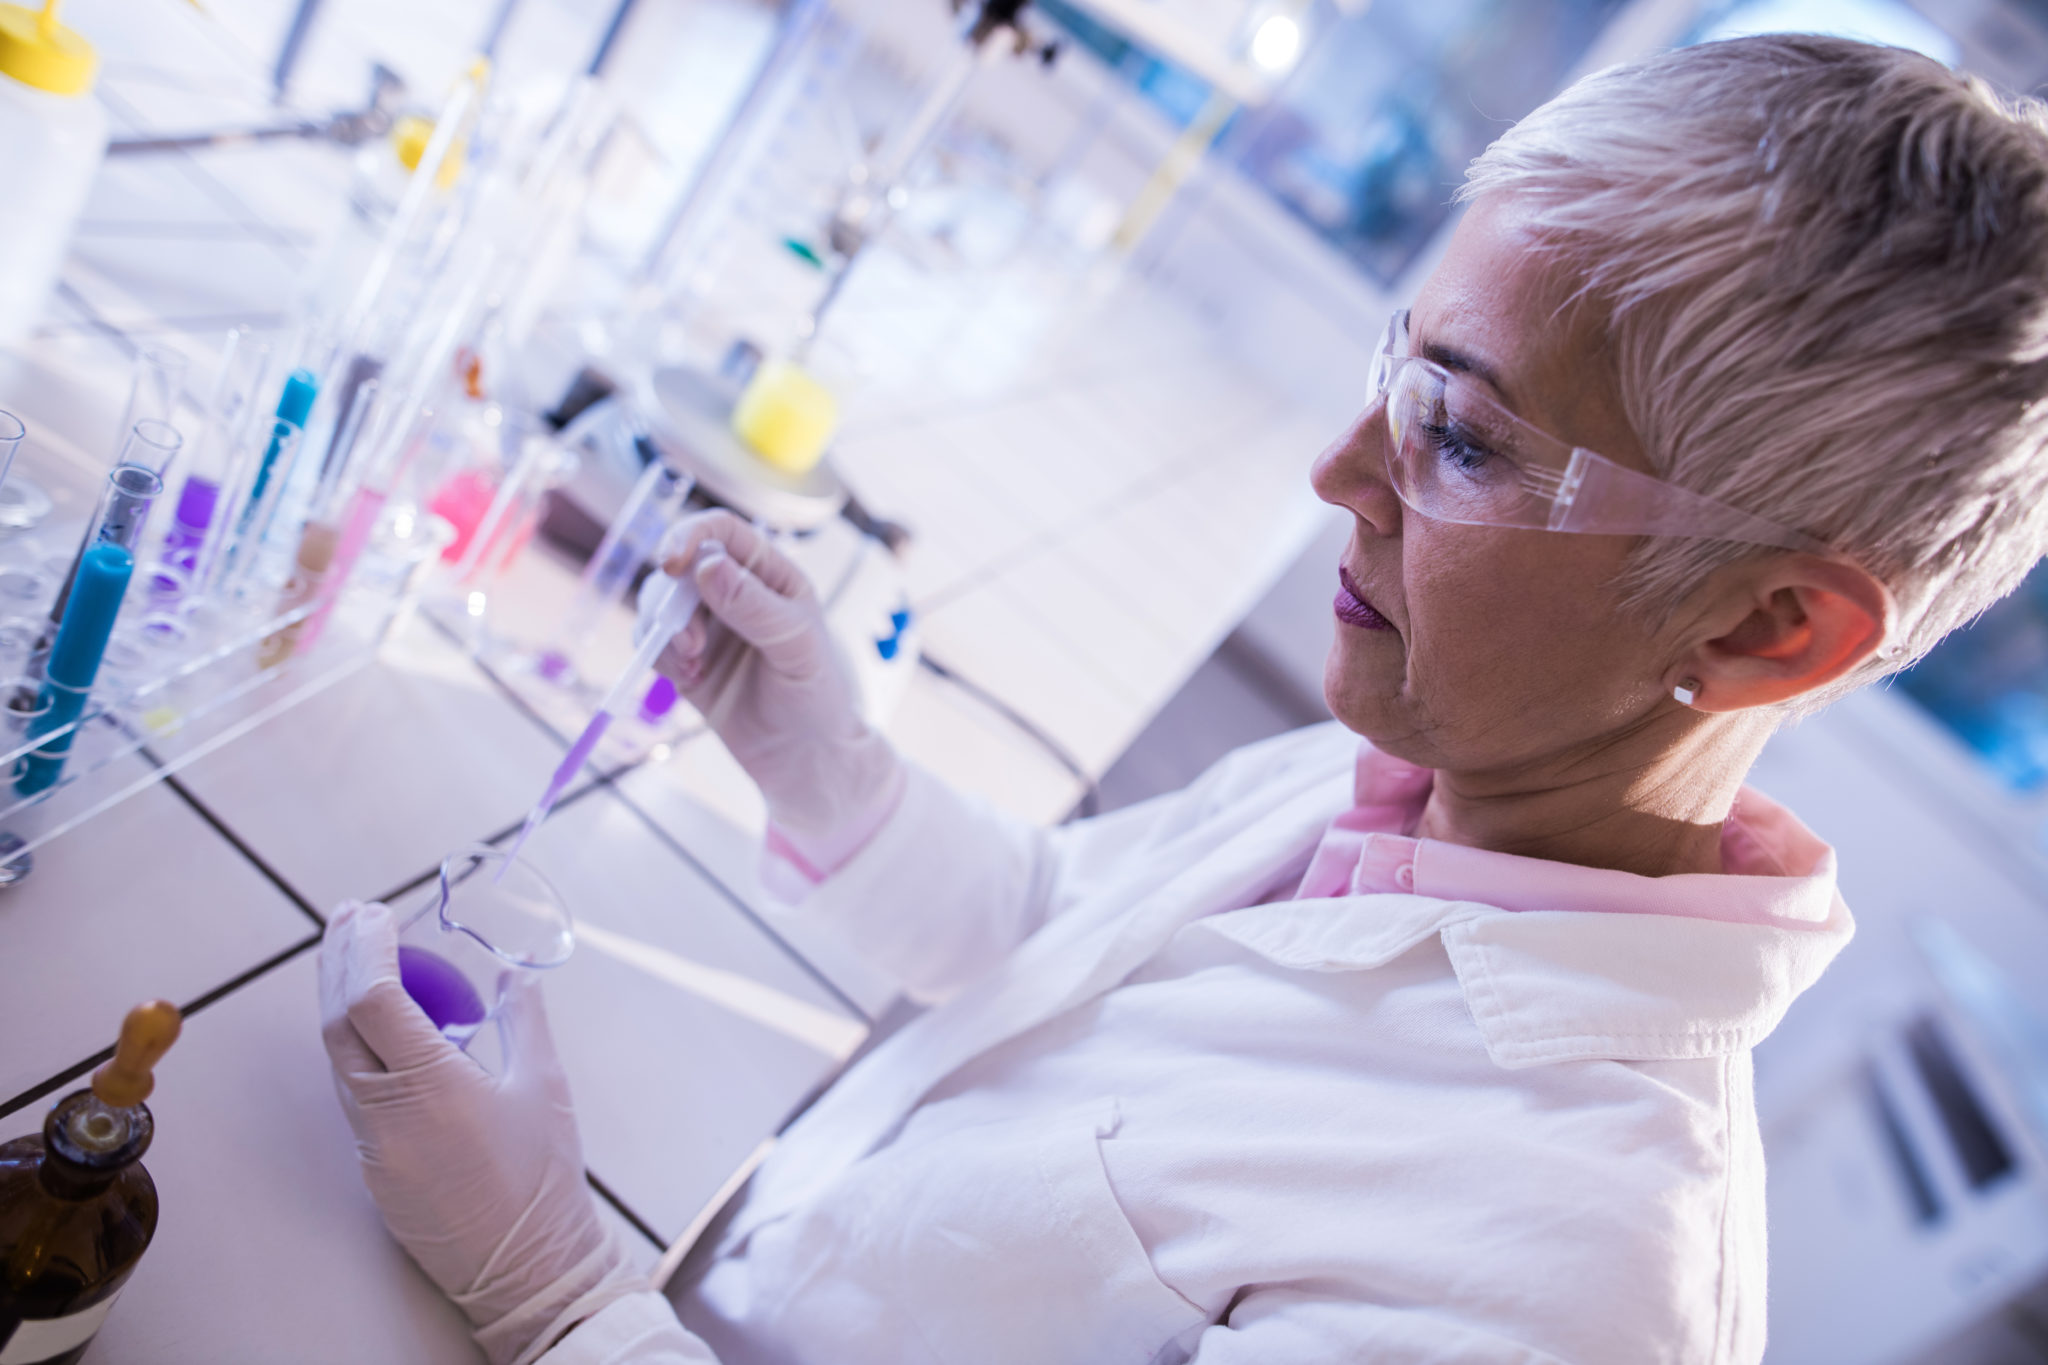 Mature female chemist working on scientific experiment in the lab